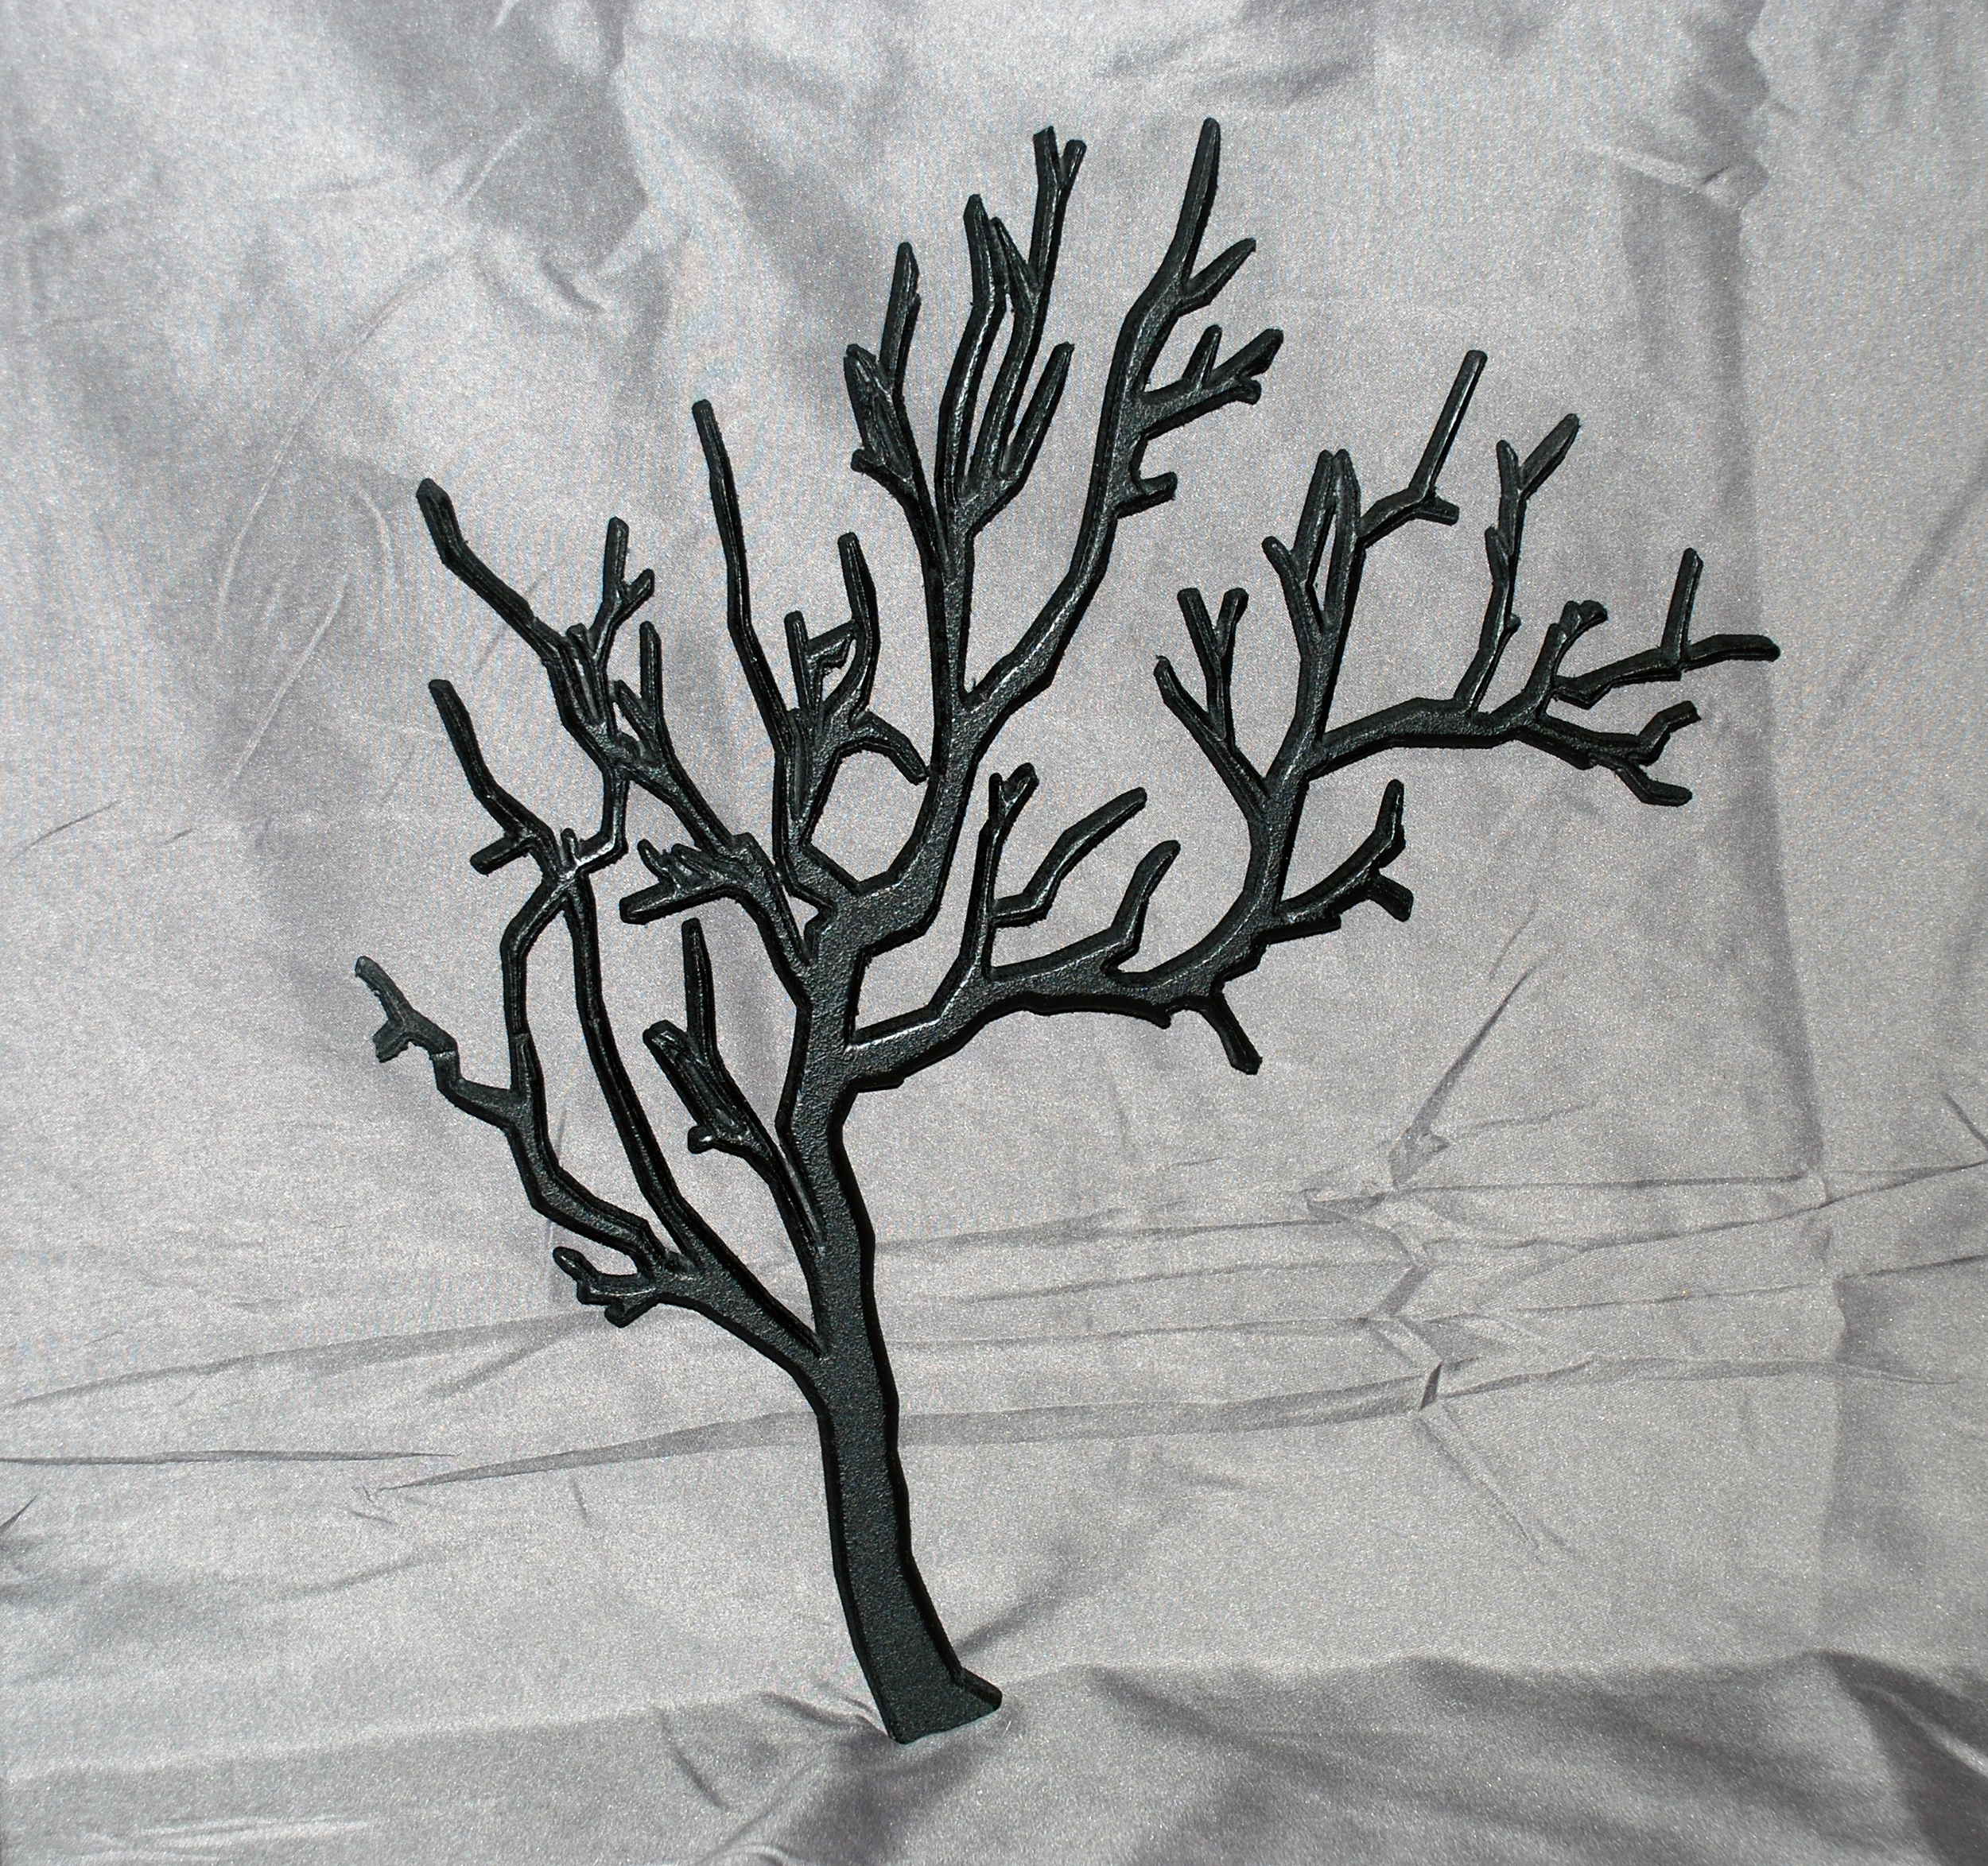 2.5D Tree for a picture framing competition.